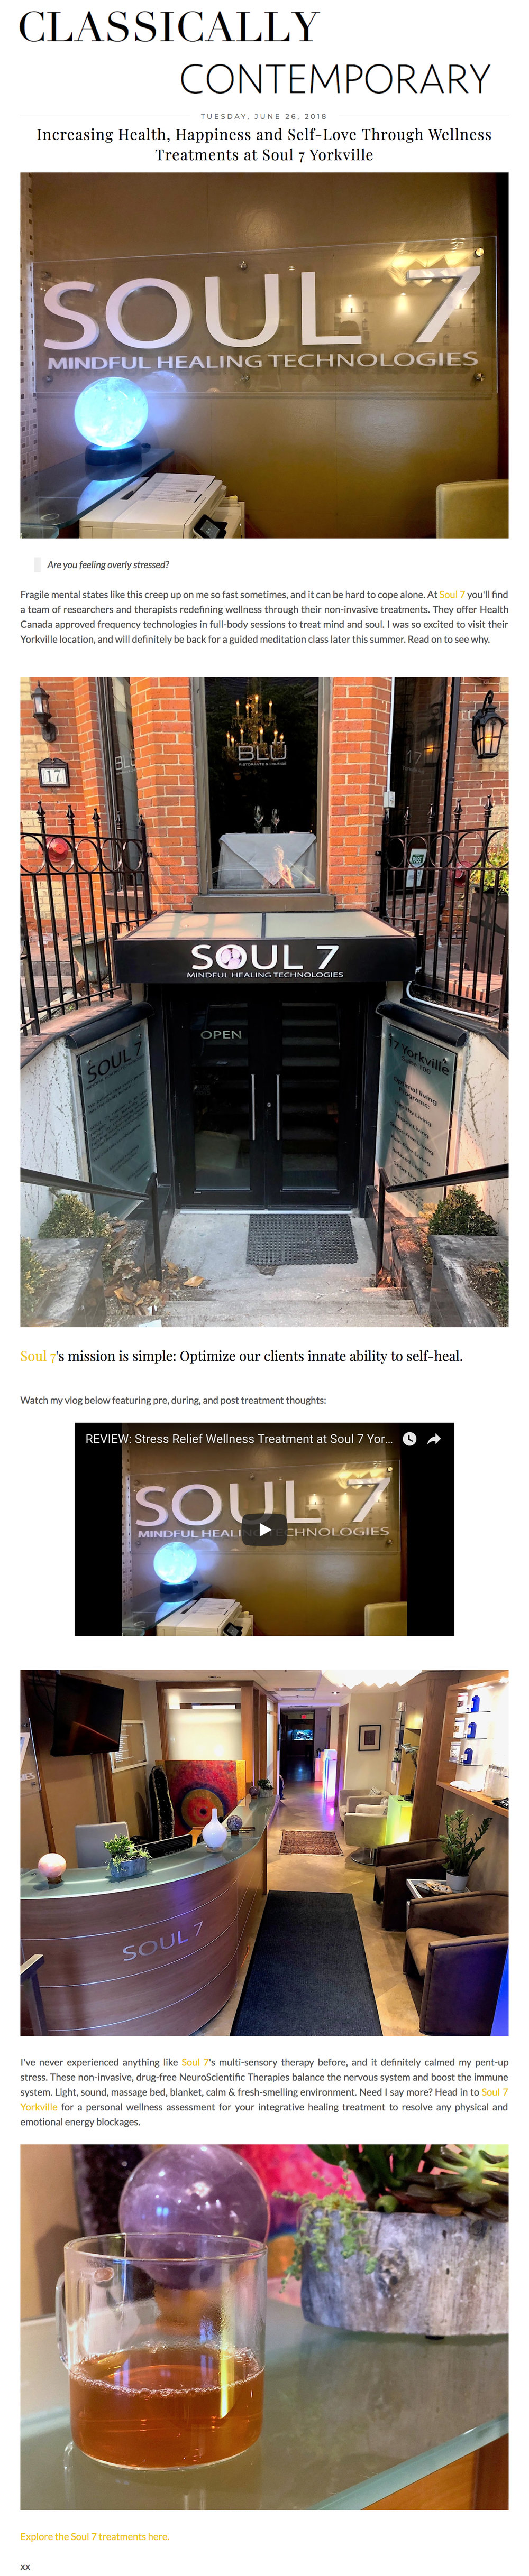 Soul7 featured in Classically Contemporary. www.classicallycontemporary.com